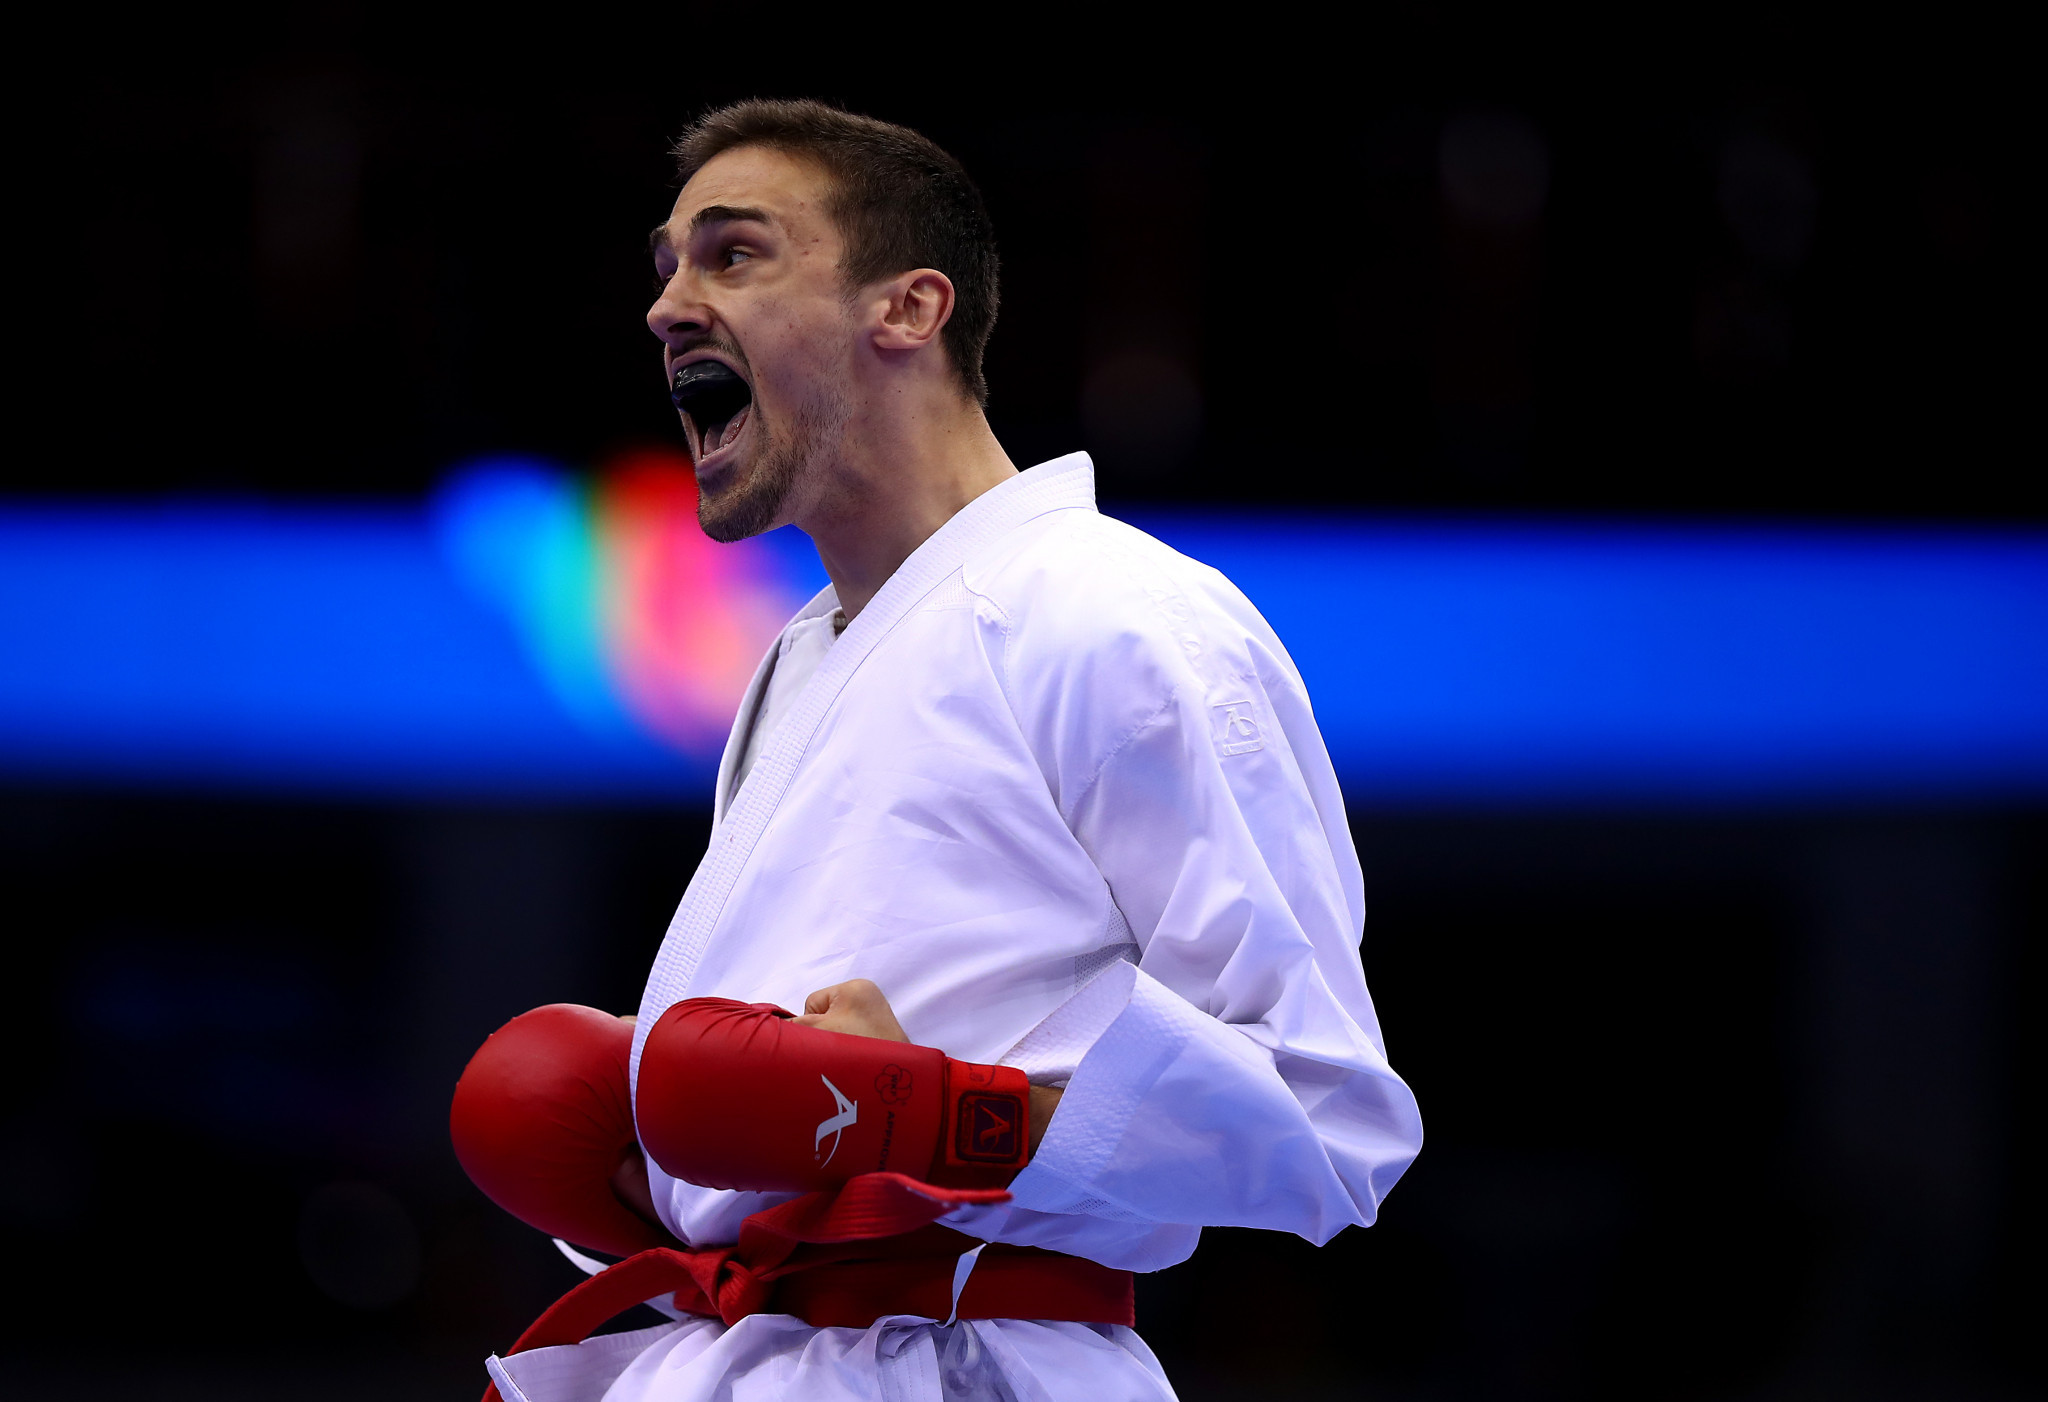 Ivan Kvesic is part of the Croatia team that reached the men's team kumite final on day three of the European Karate Championships ©Getty Images